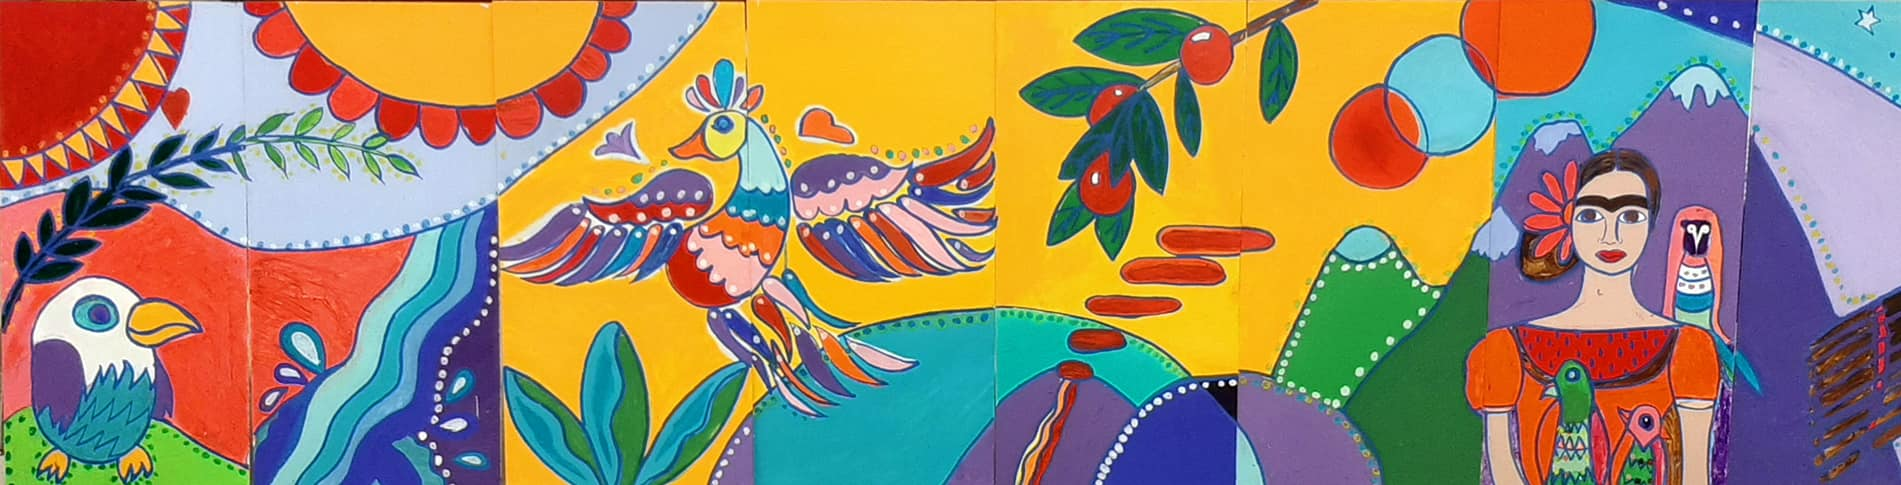 New Mural Highlights Pride in Latino Heritage